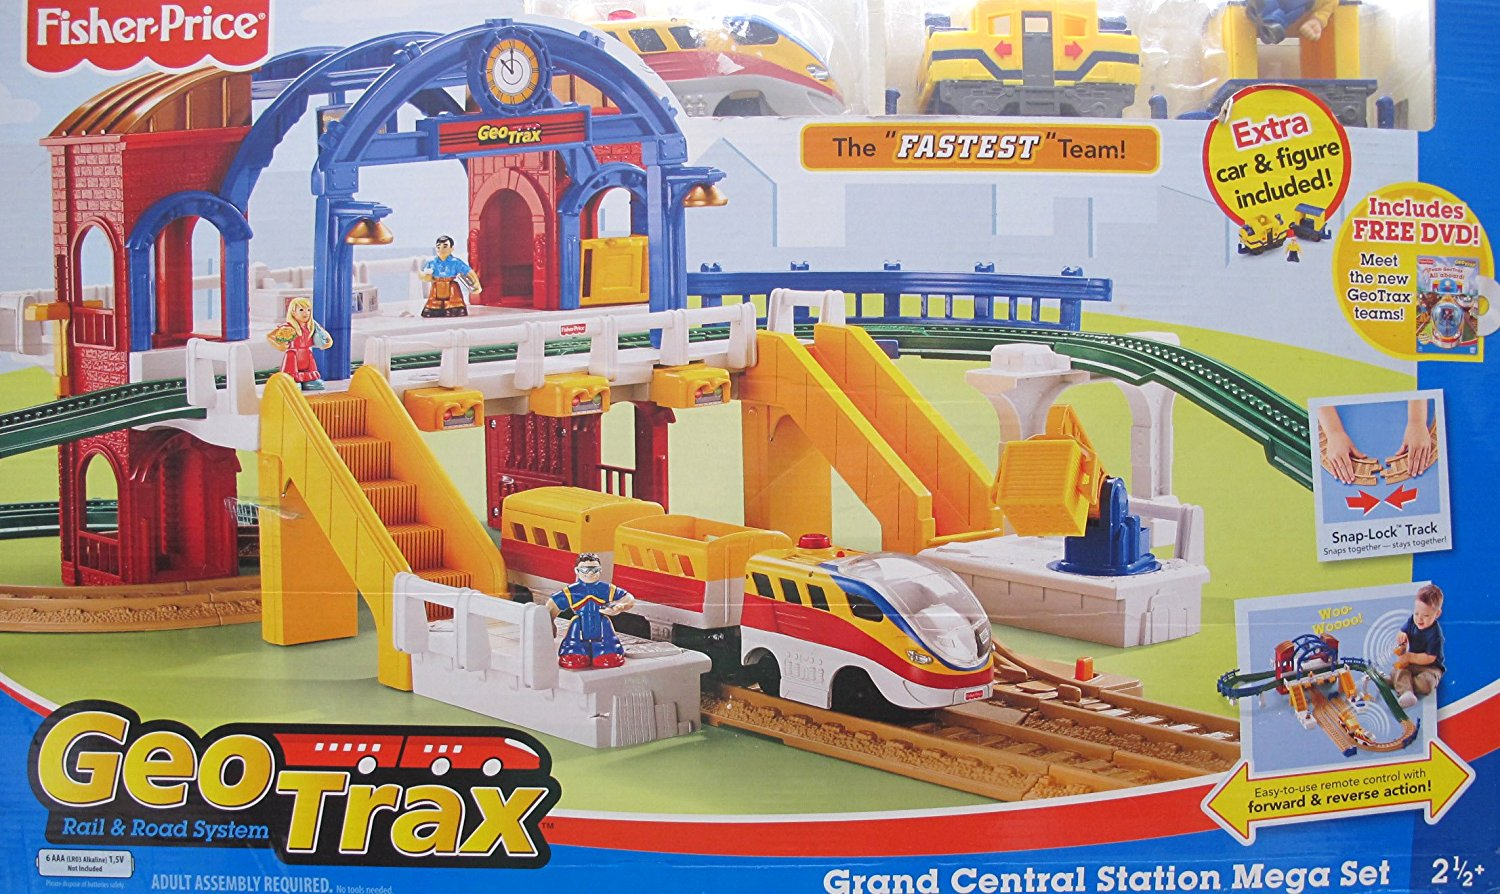 "GEOTRAX Geo Trax REMOTE Control GRAND CENTRAL STATION 'MEGA' TRAIN SET w ""SOUNDS"", The FASTEST Team & CONFUSED Team (Total 4 FIGURES) & More! (2007)"